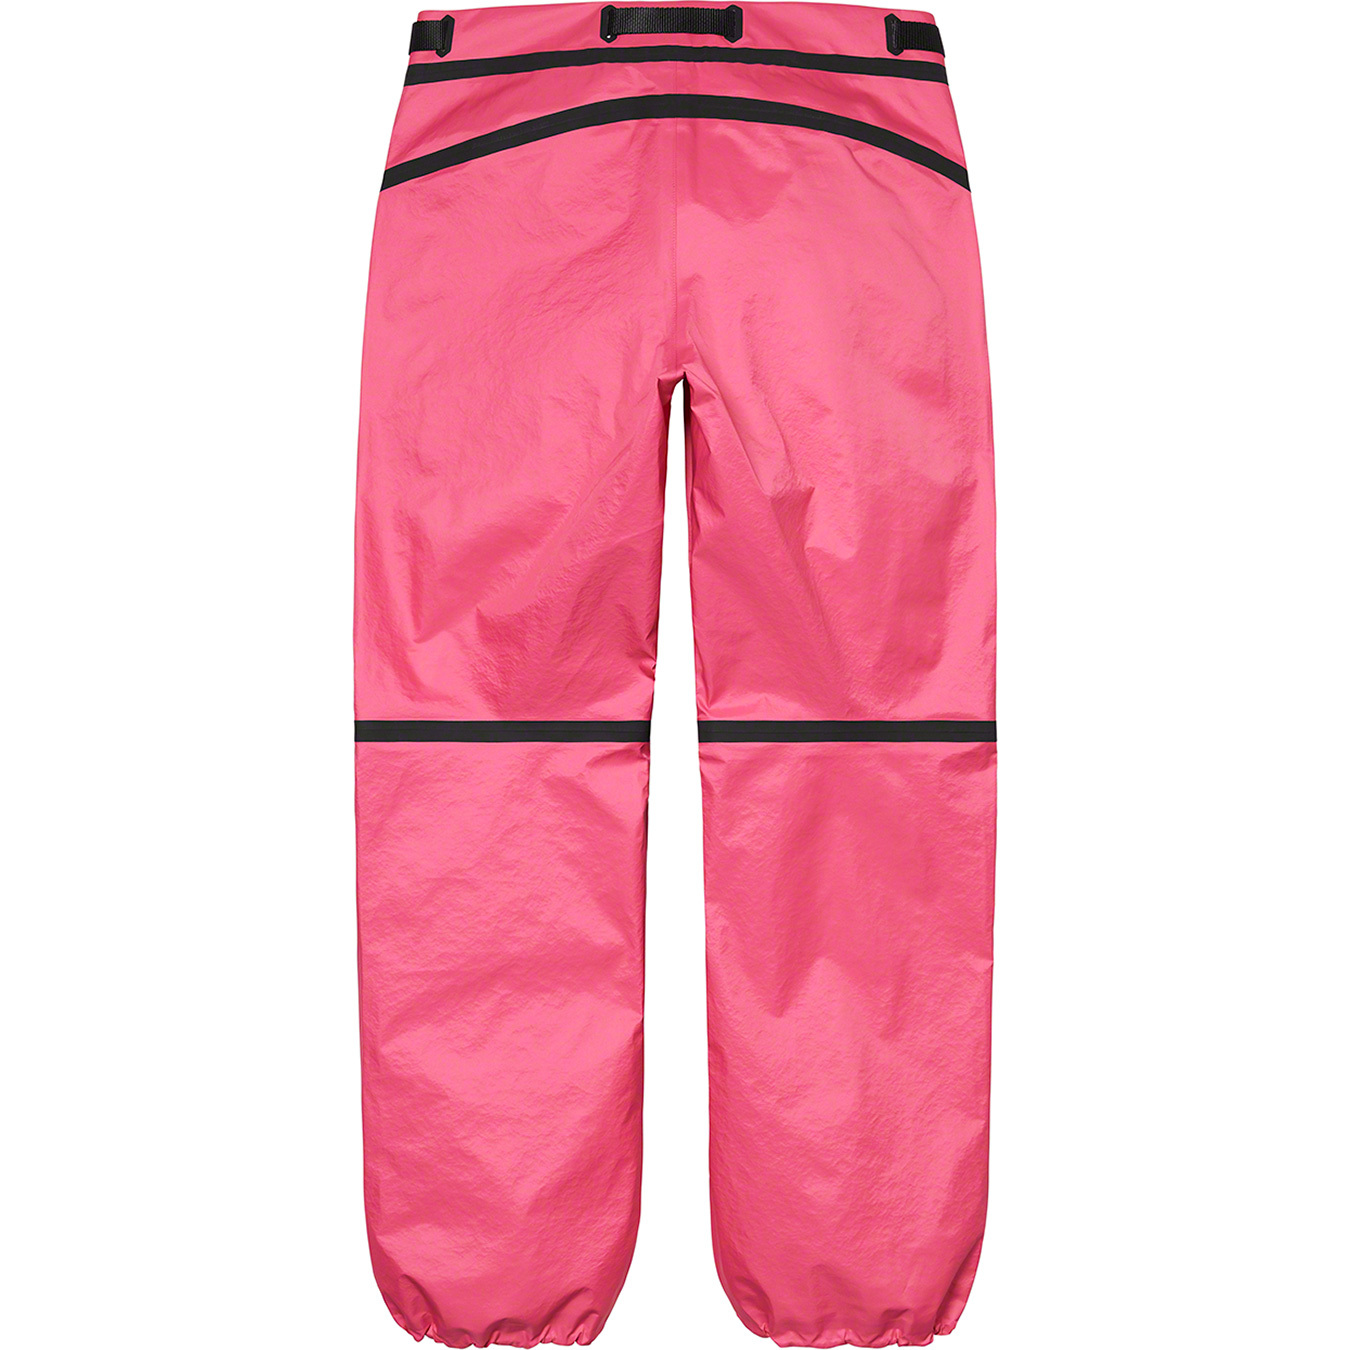 supreme-the-north-face-summit-series-outer-tape-seam-collection-release-21ss-20210529-week14-mountain-pant